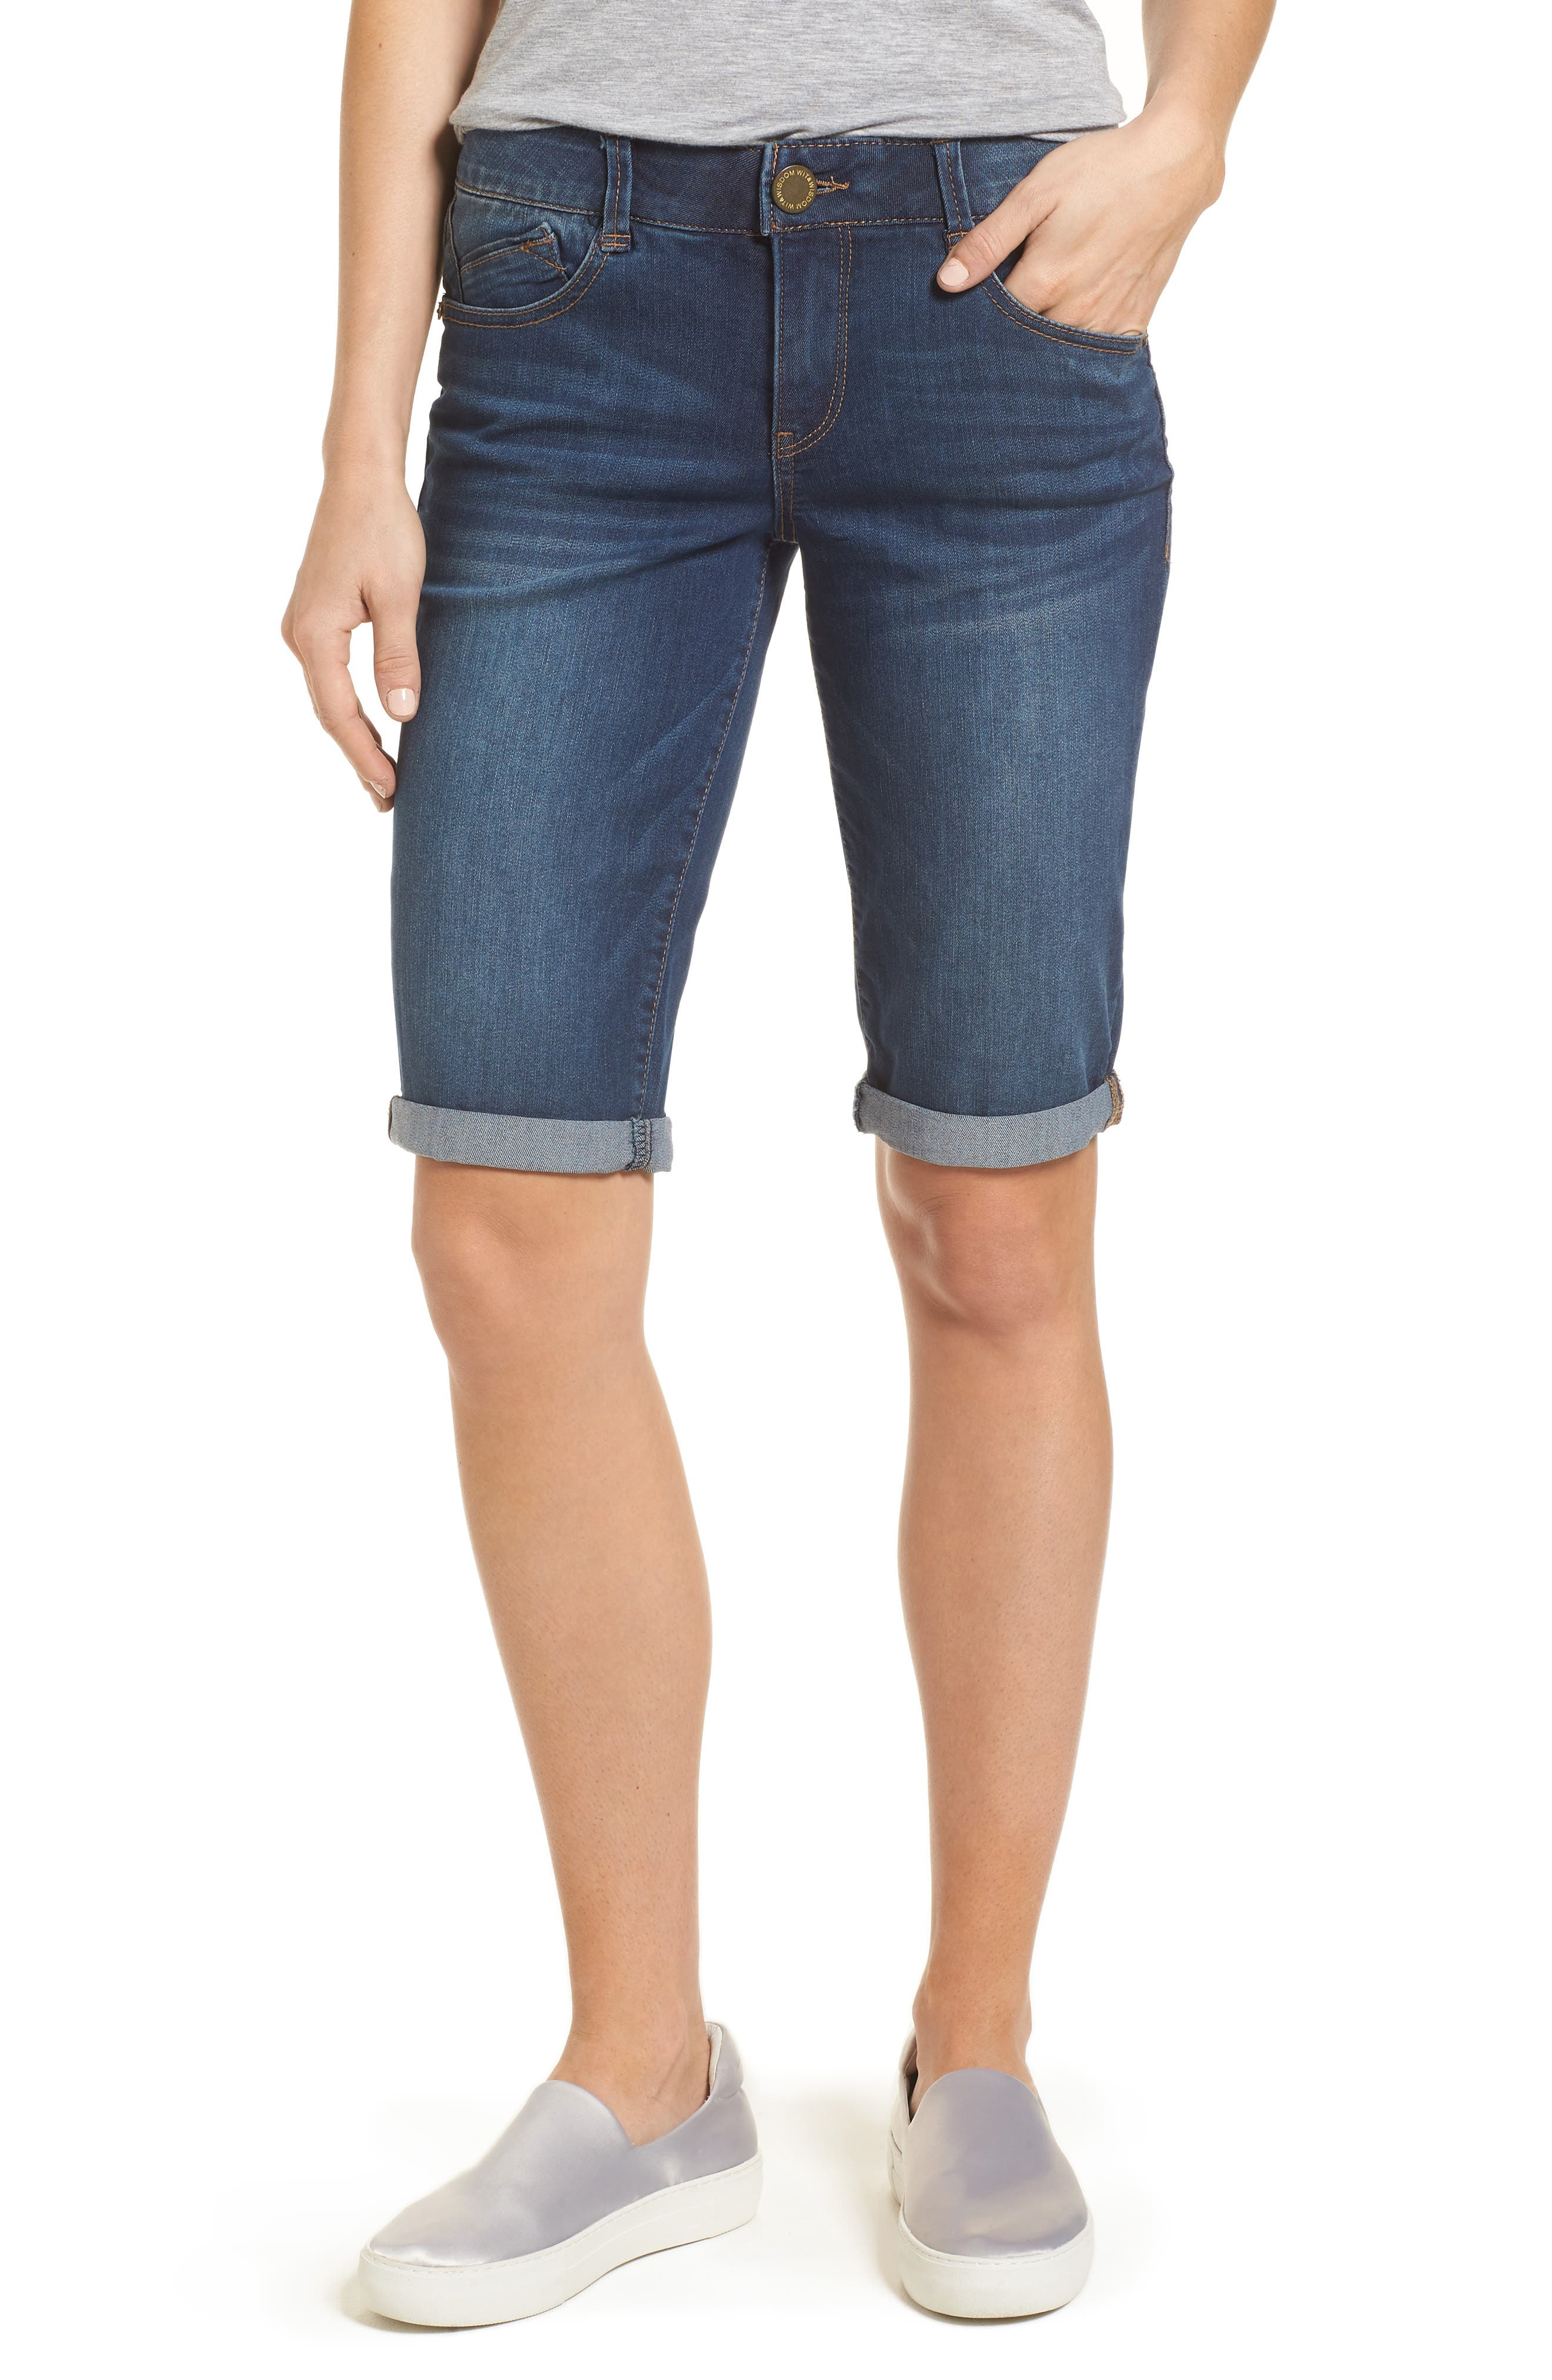 Alternate Image 1 Selected - Wit & Wisdom Ab-solution Cuffed Denim Shorts (Nordstrom Exclusive)